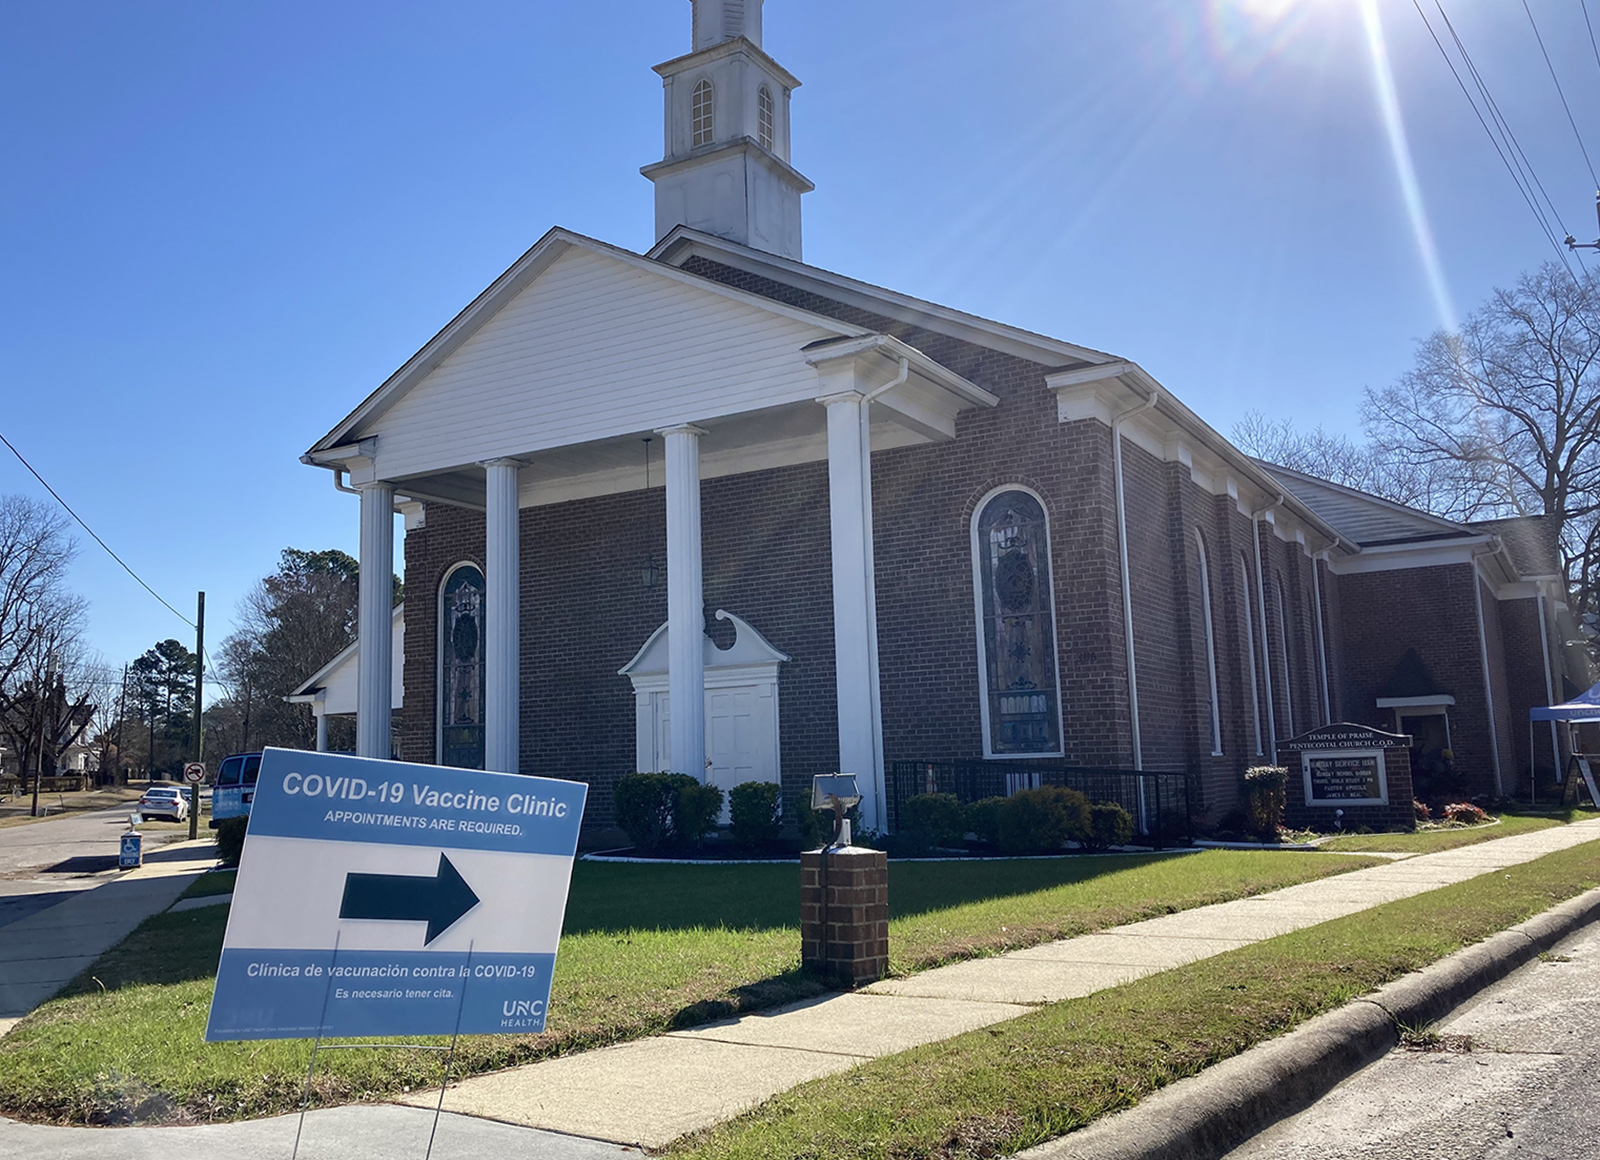 A sign directs people to the side door of the Temple of Praise Church of Deliverance in Kenly, North Carolina, where UNC Health held a mobile vaccination clinic on Wednesday, Feb. 17, 2021. RNS photo by Yonat Shimron